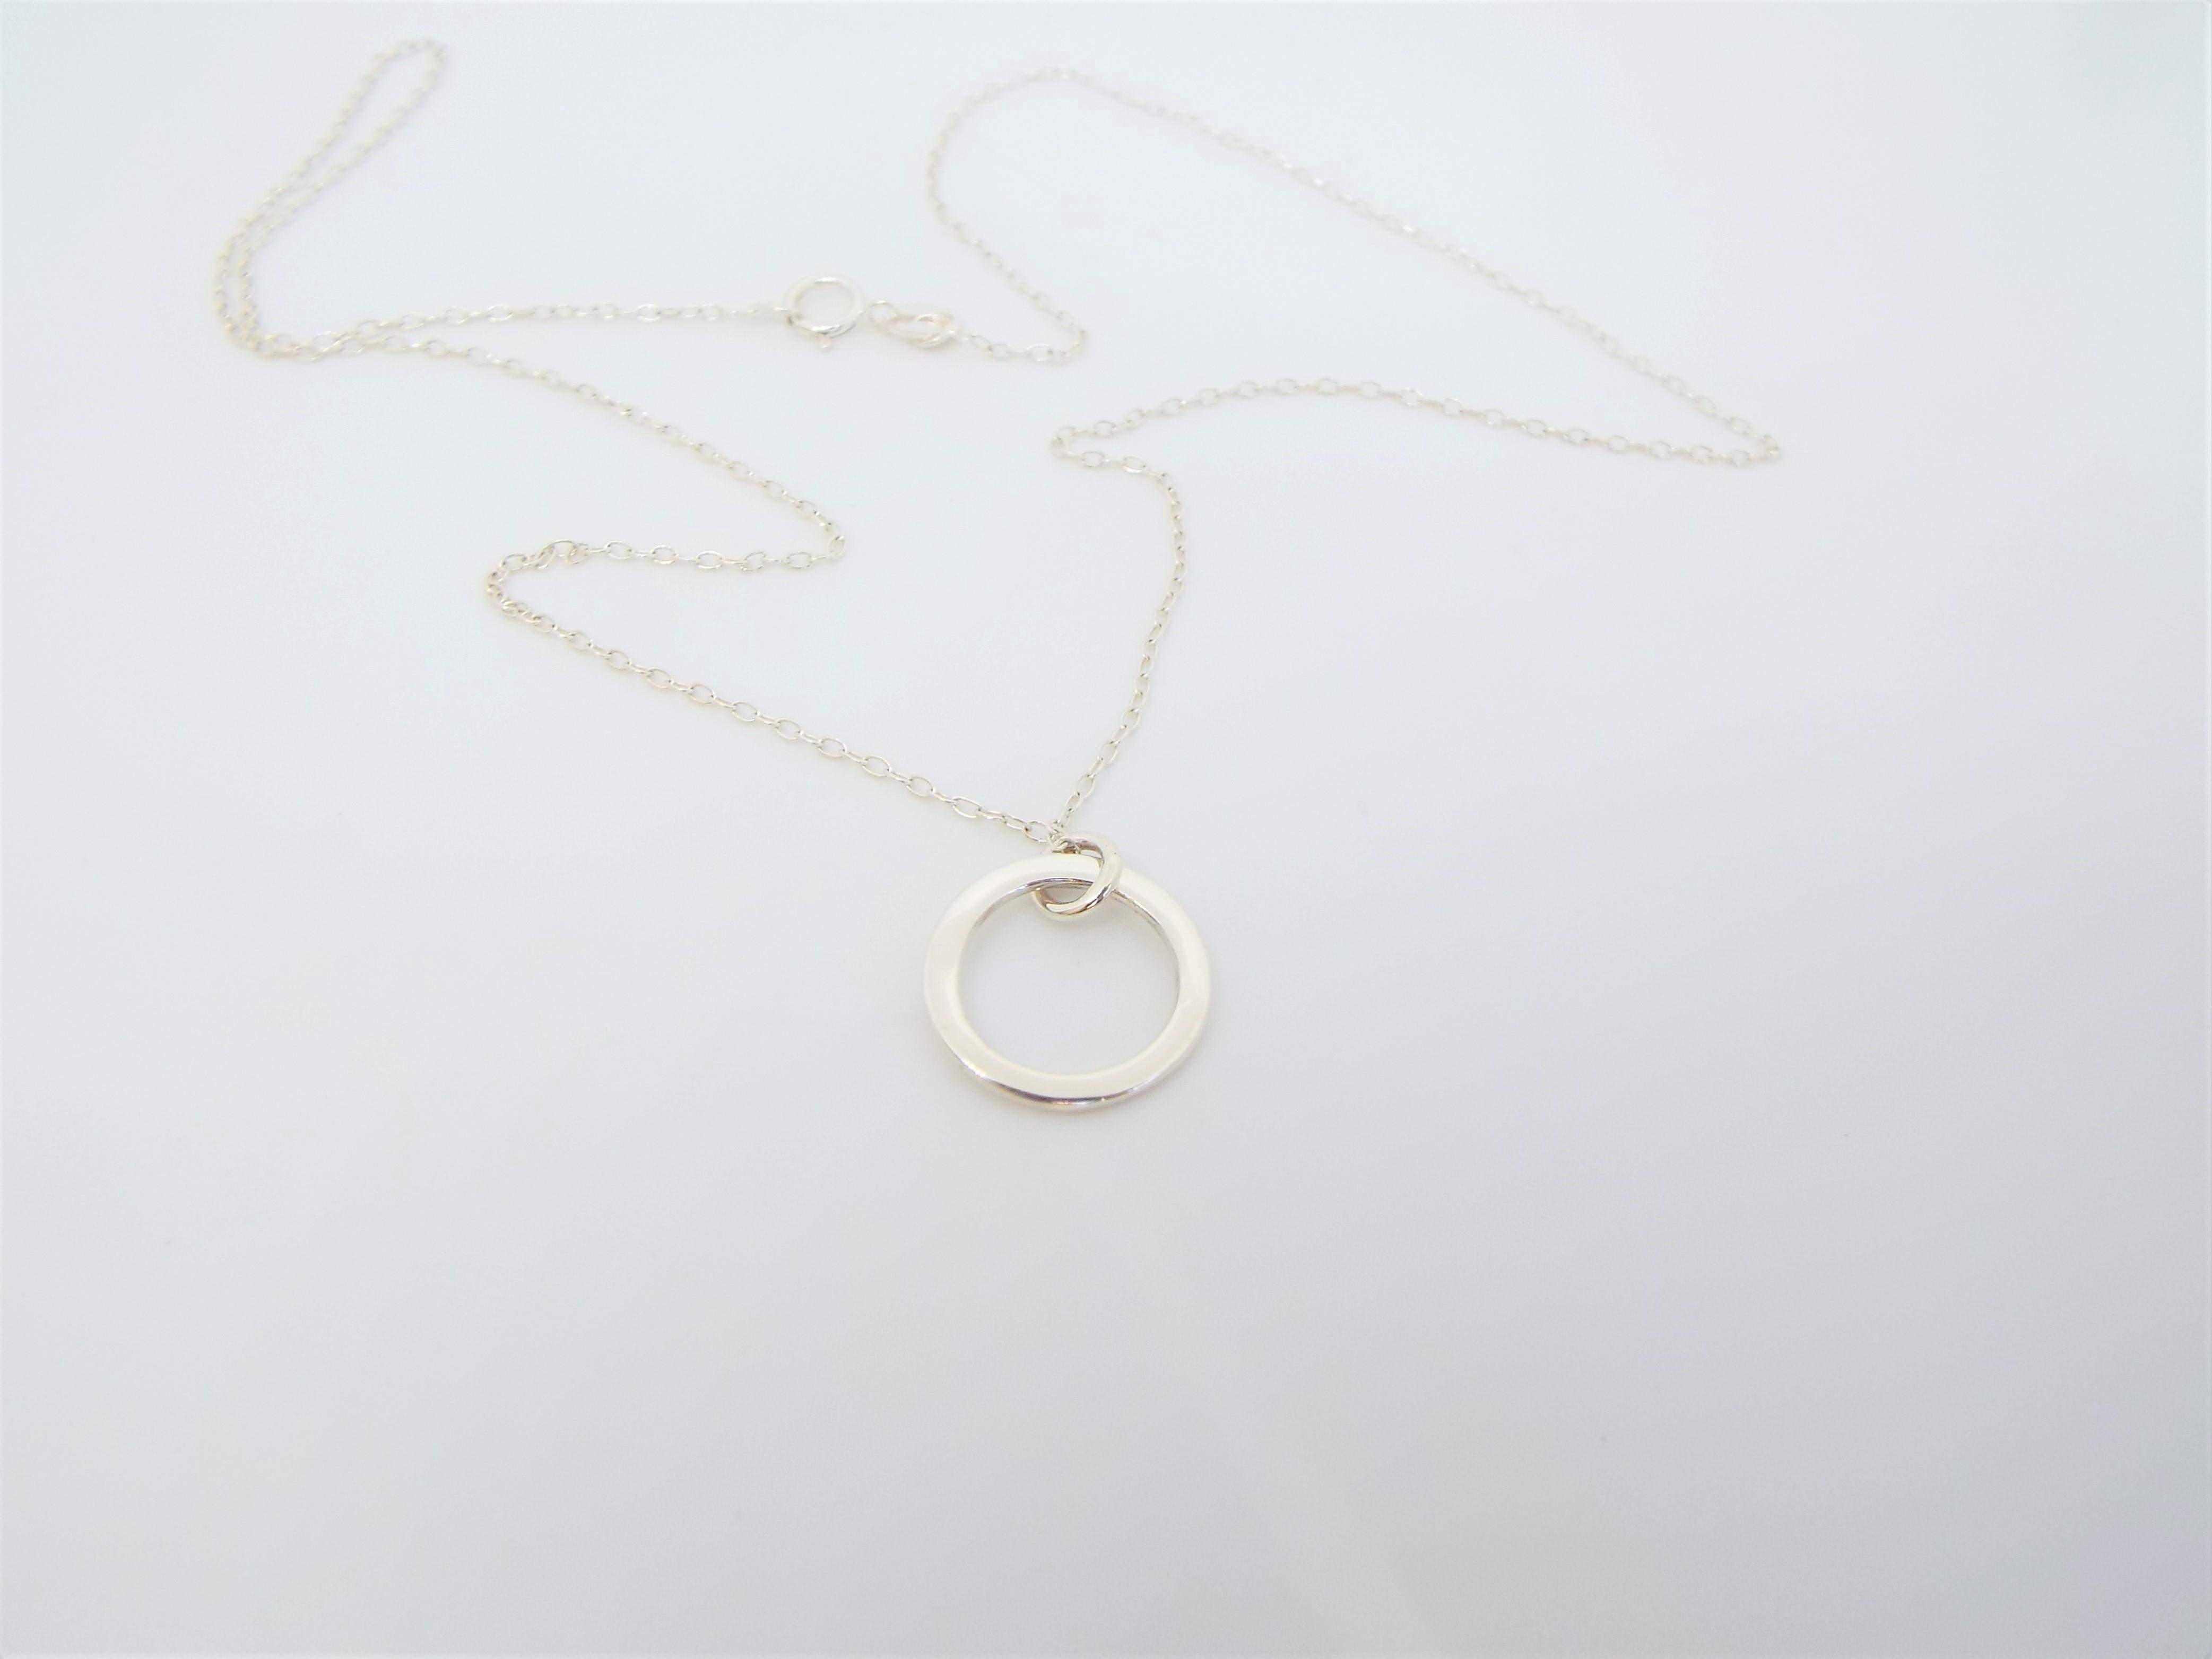 dainty silver circle pendant necklace on a chain